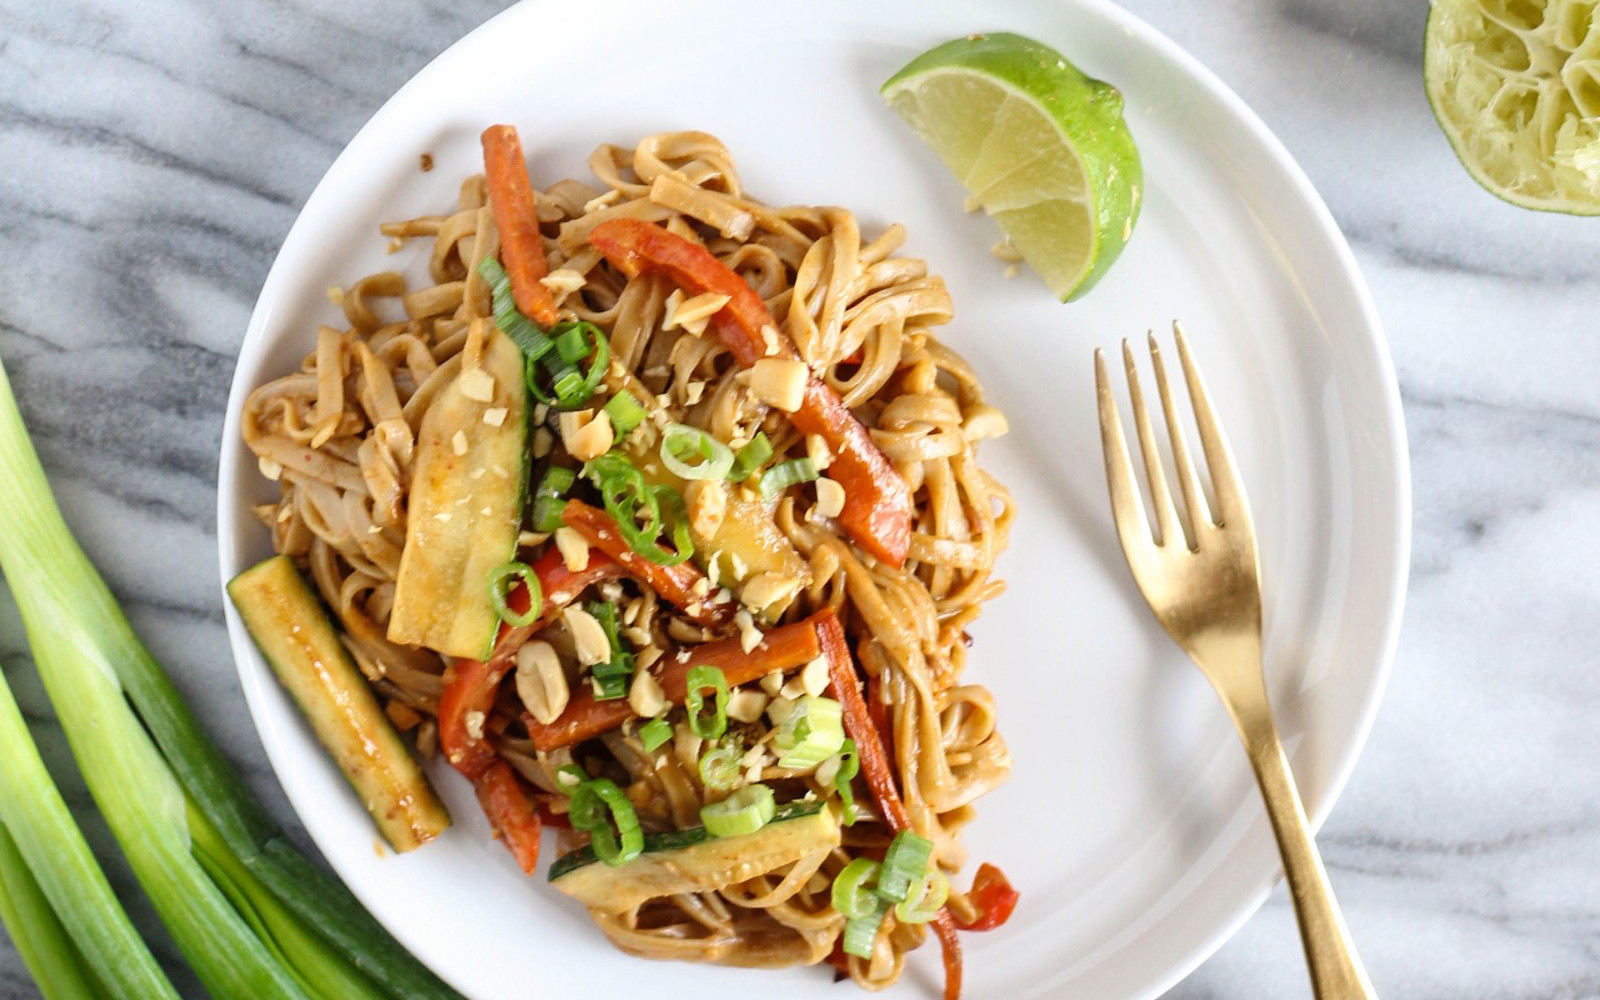 Miso Vegetable Pad Thai